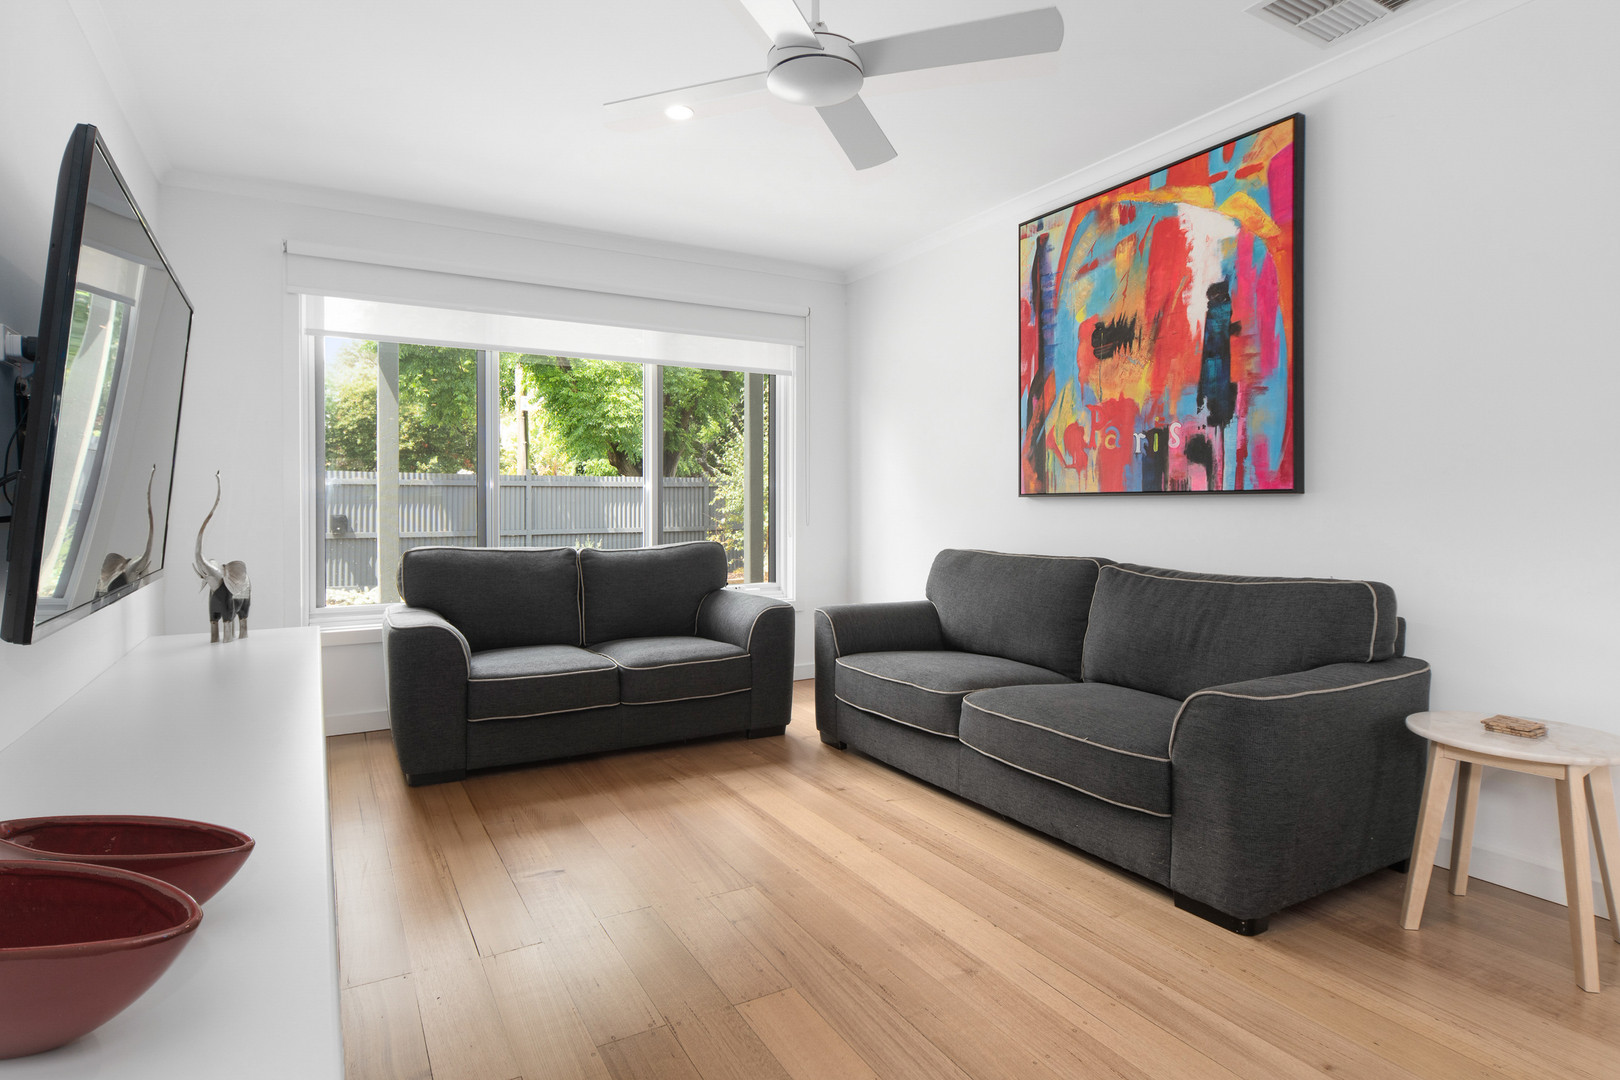 Ceiling fans throughout and air conditioning